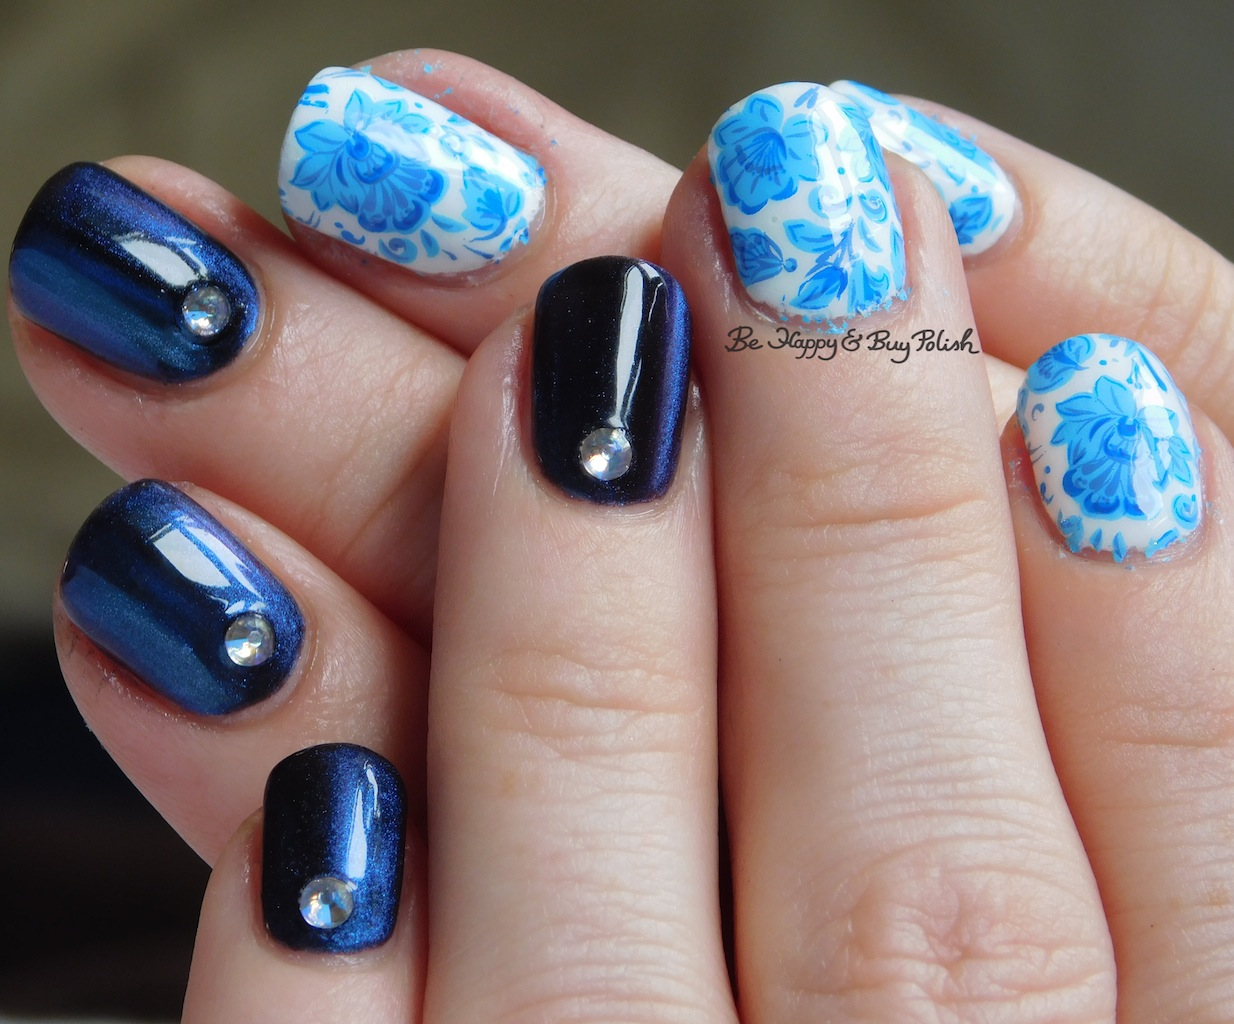 Blue China Magnetic Nail Art With Kbshimmer Sally Hansen Crystal